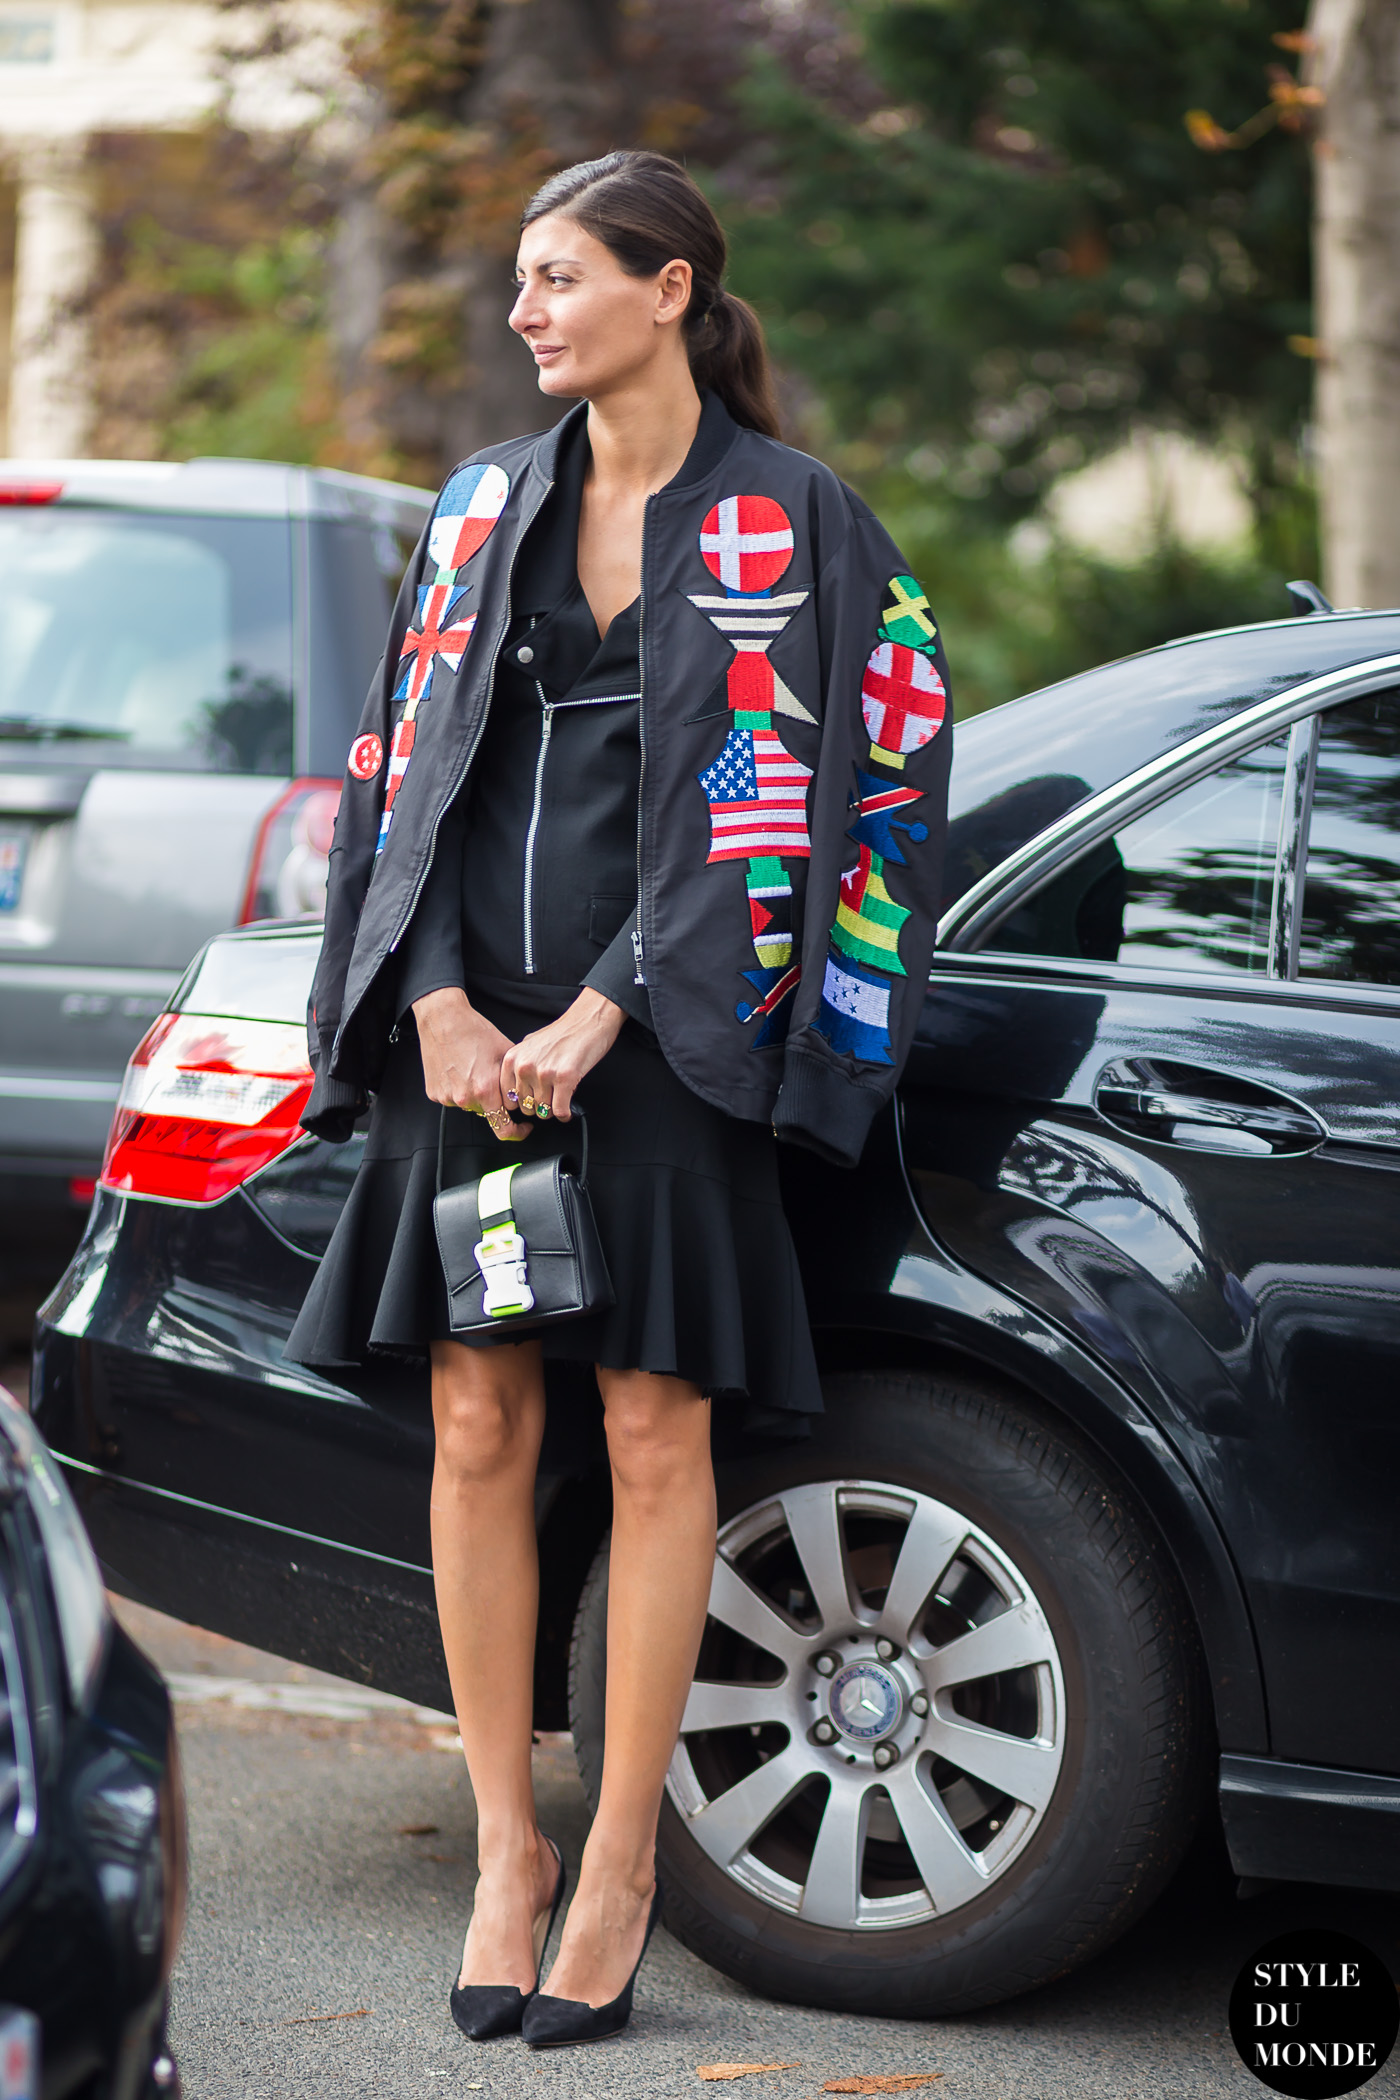 Giovanna Battaglia Street Style Street Fashion Streetsnaps by STYLEDUMONDE Street Style Fashion Blog